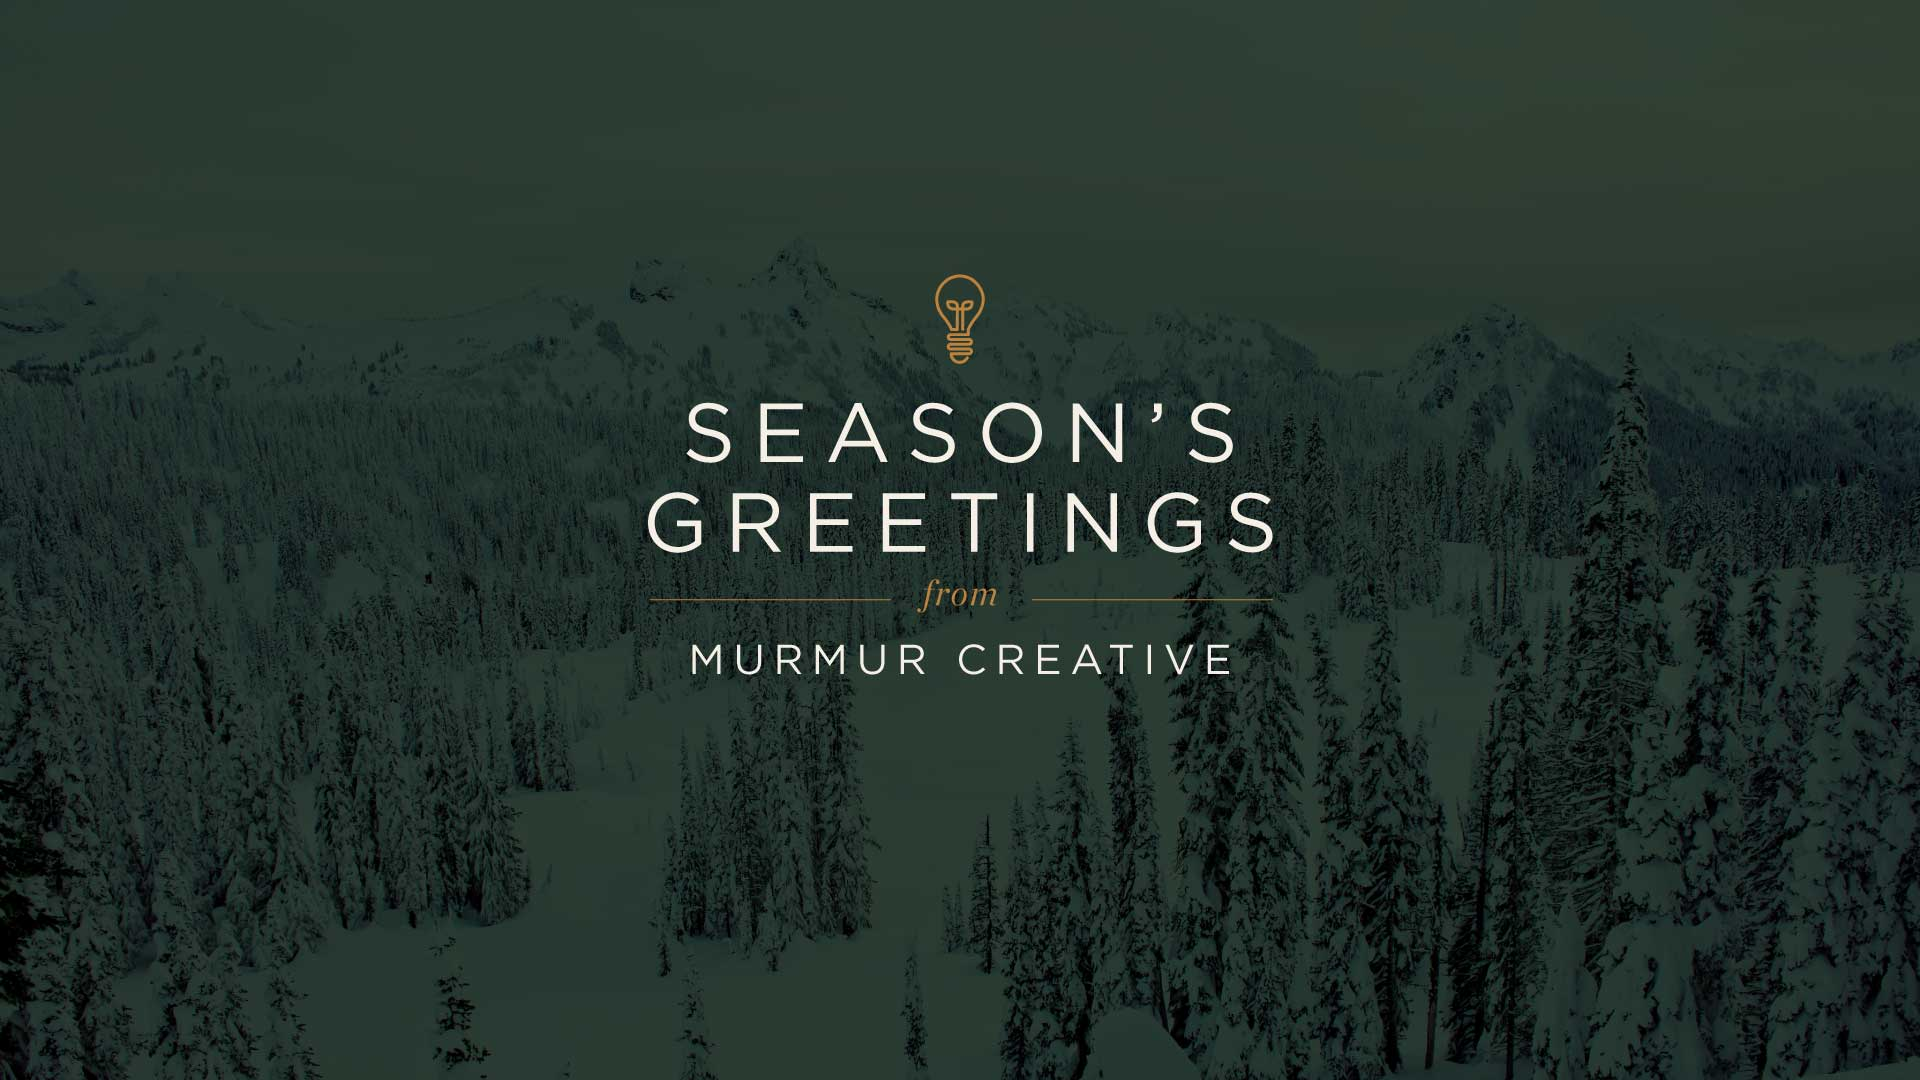 Seasons Greetings Blog Post Murmur Creative